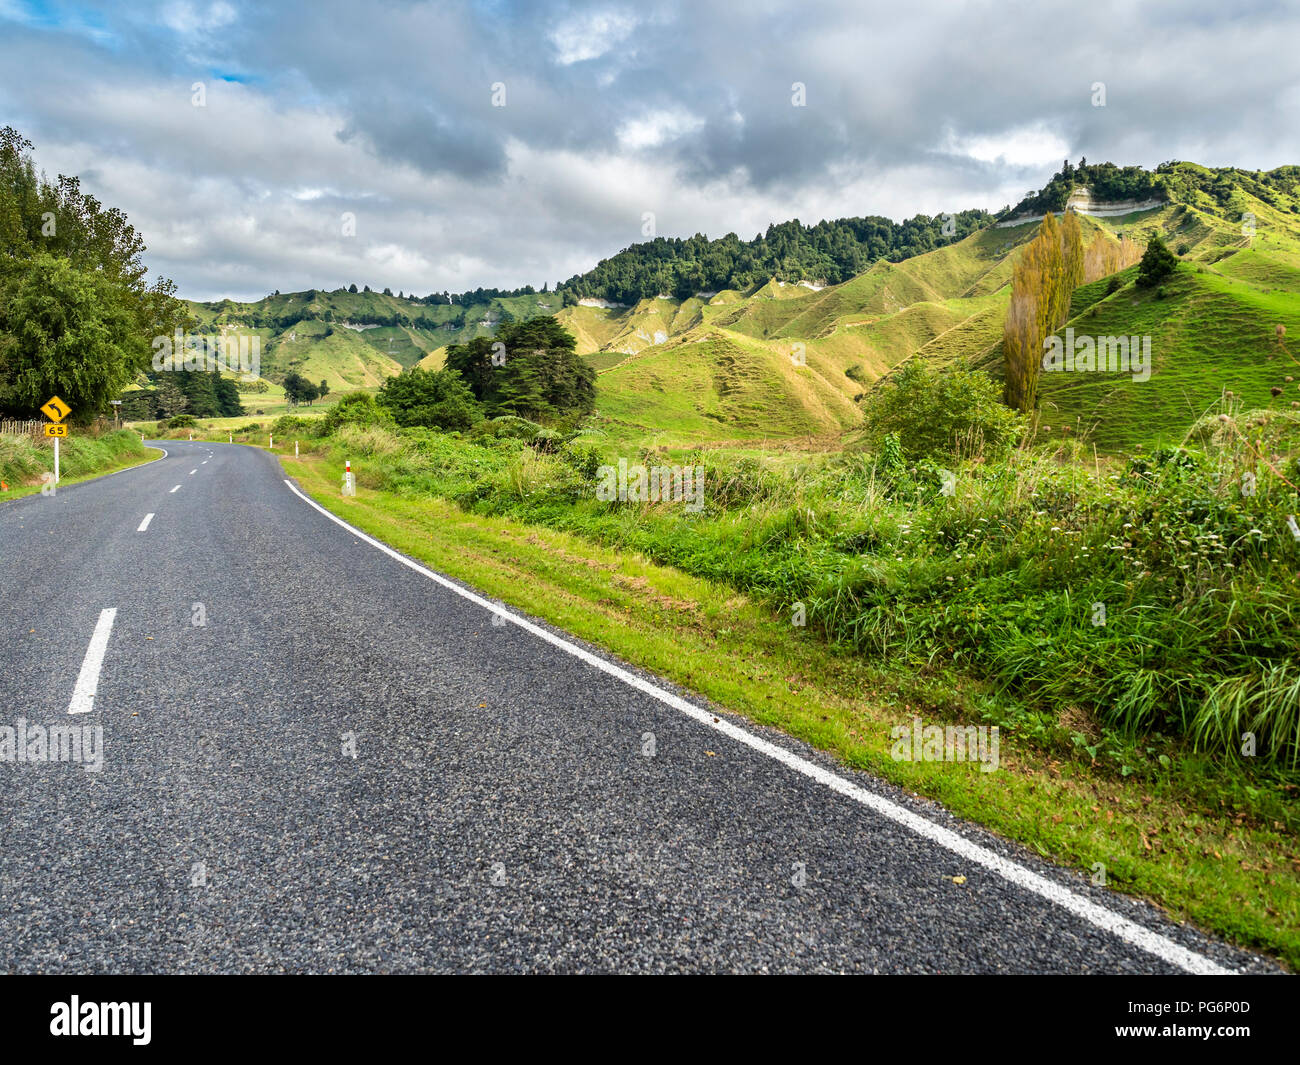 New Zealand, North Island, Taranaki, Forgotten World Highway - Stock Image